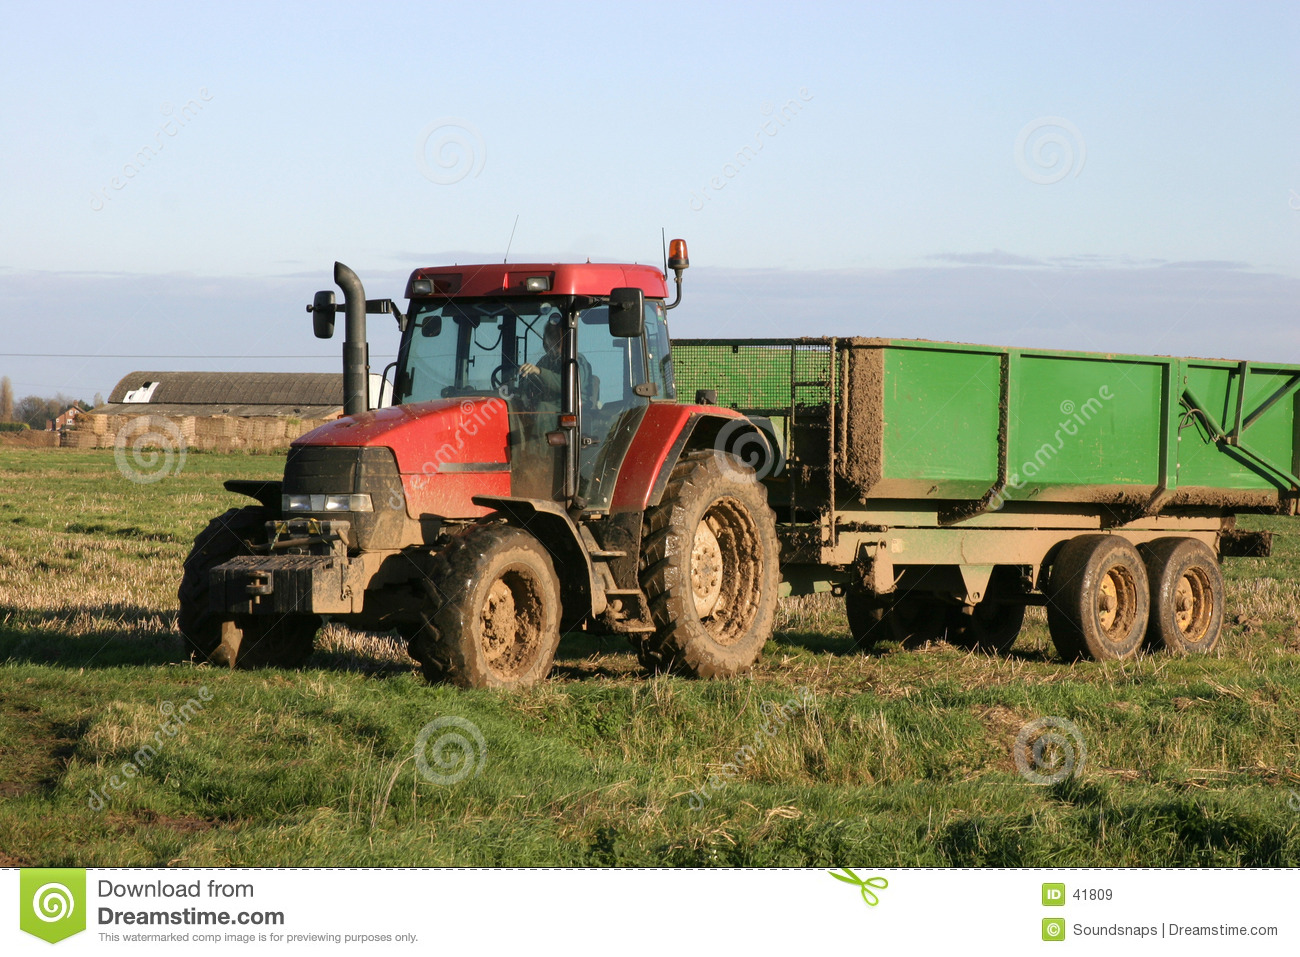 Tractor and Trailer on Farm